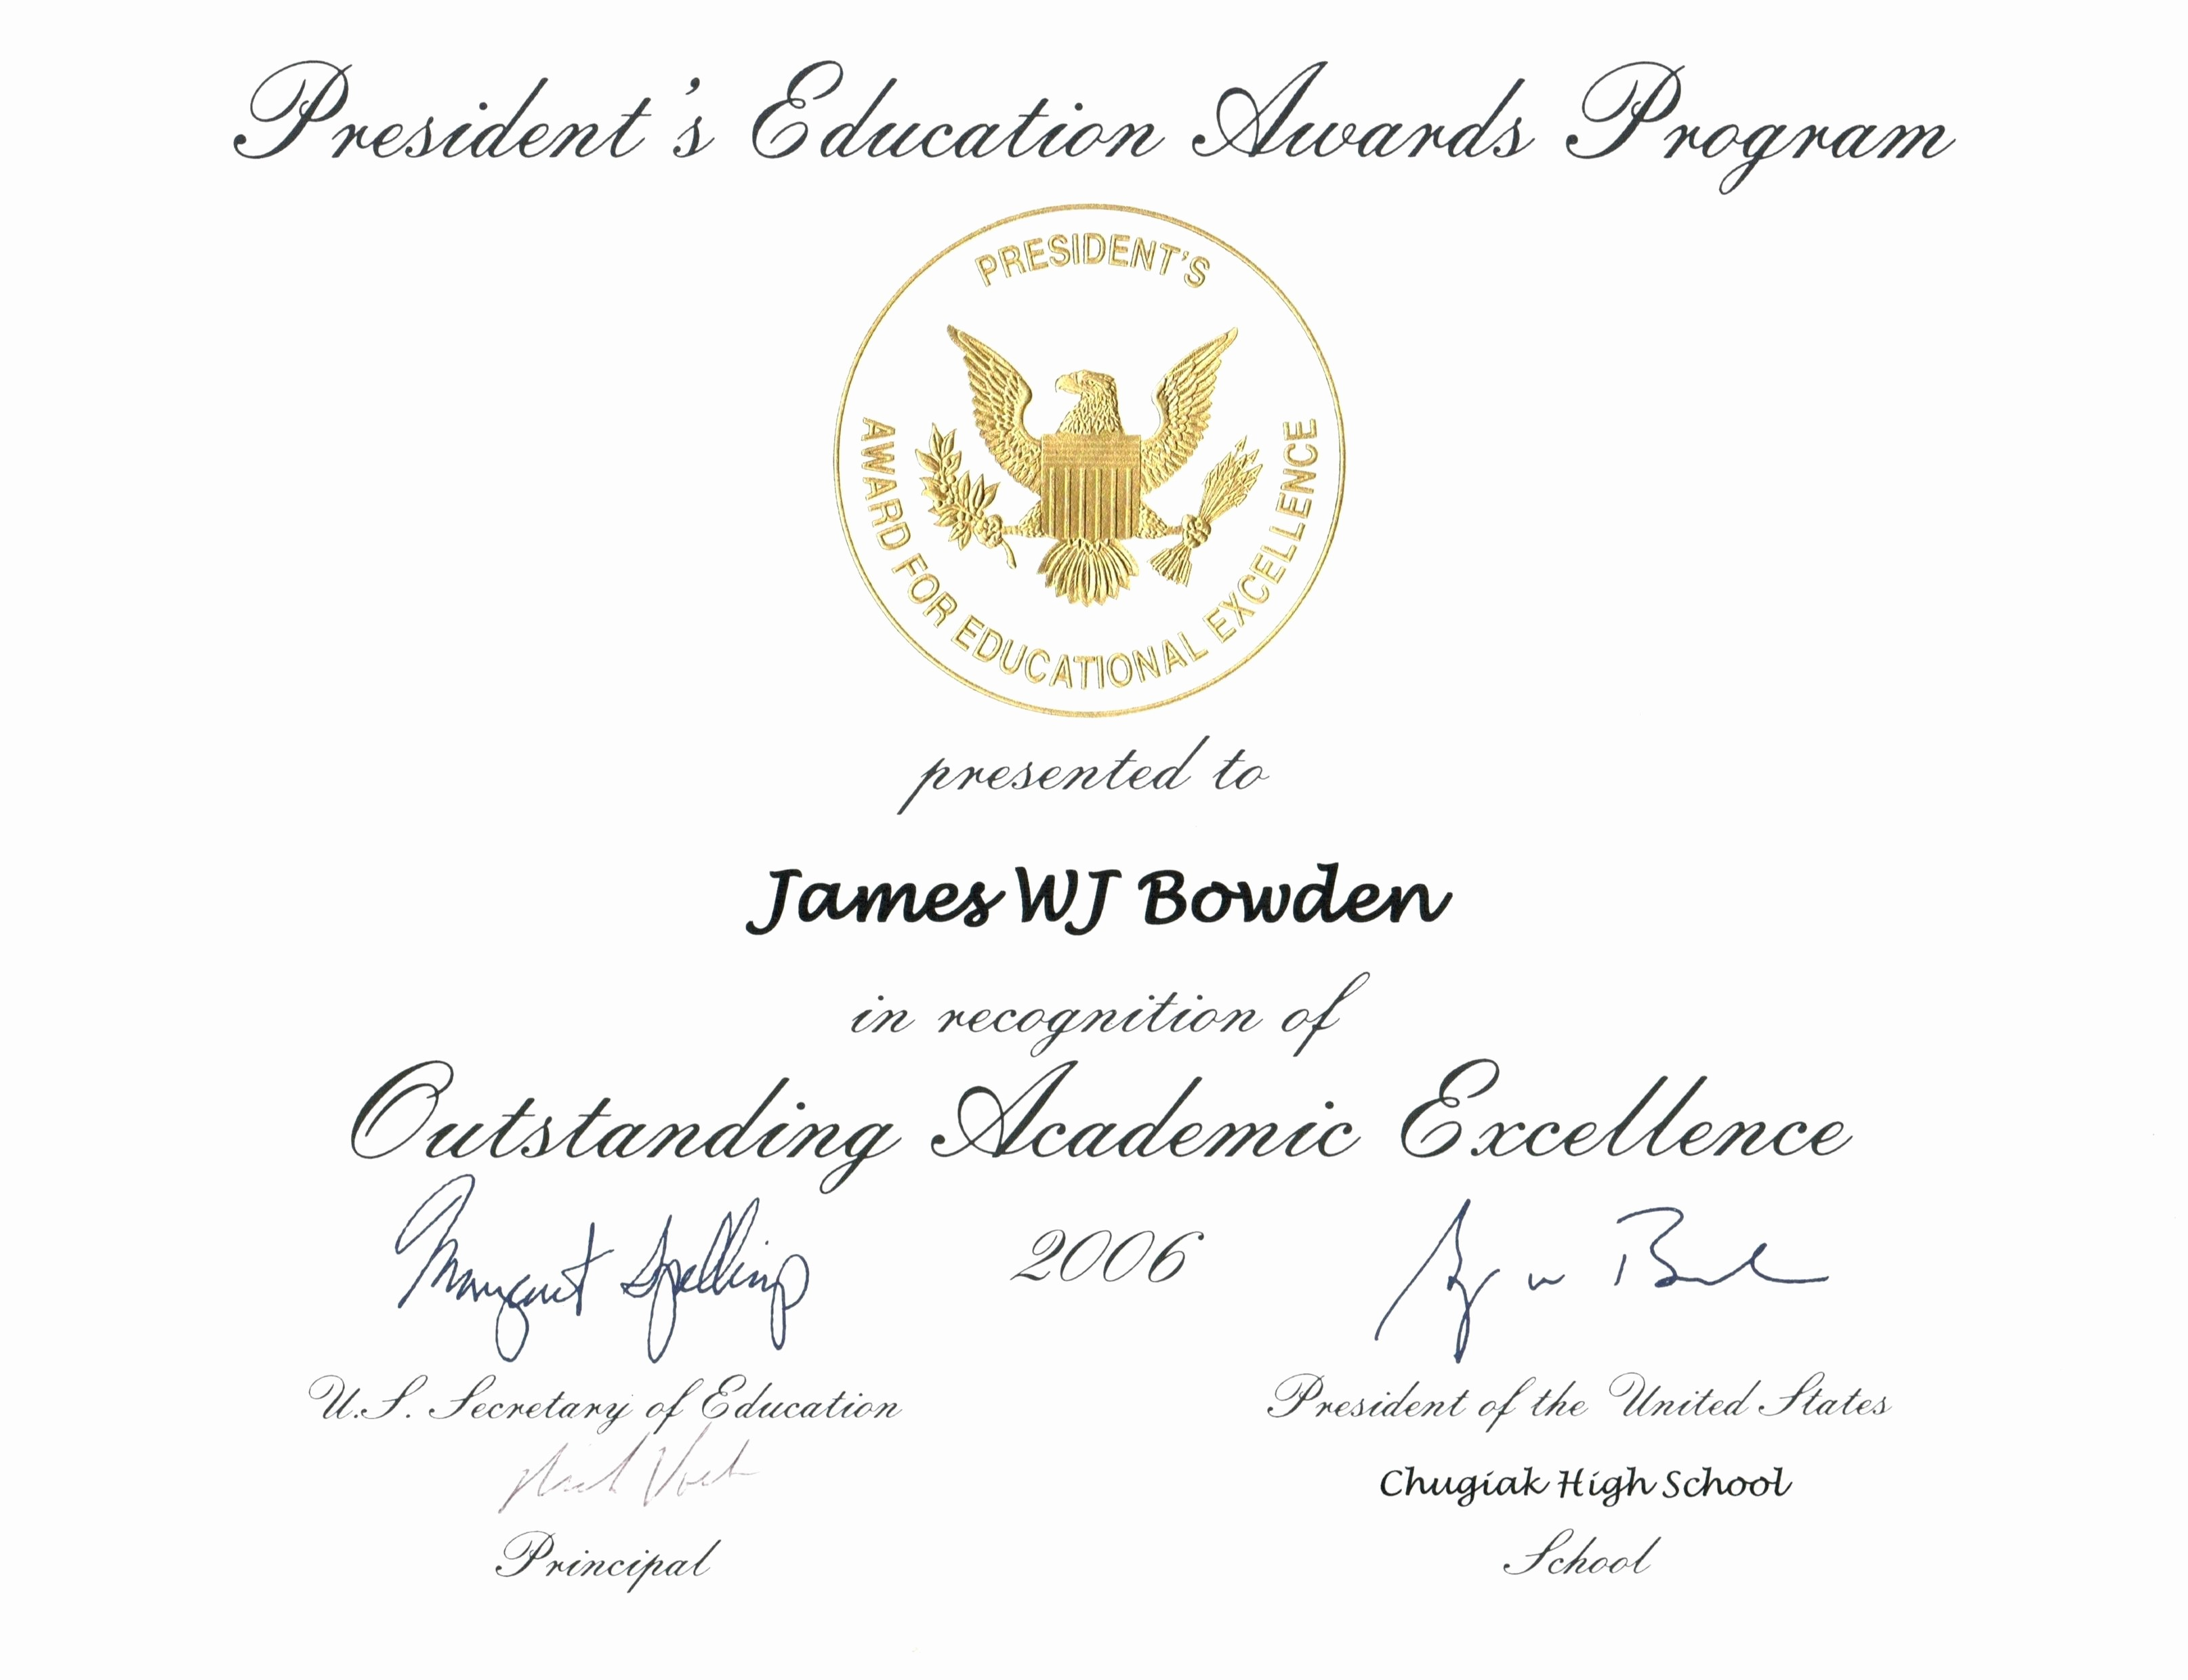 Academic Excellence Award Certificate Template New Powerpoint Excellence Award Template Image Collections